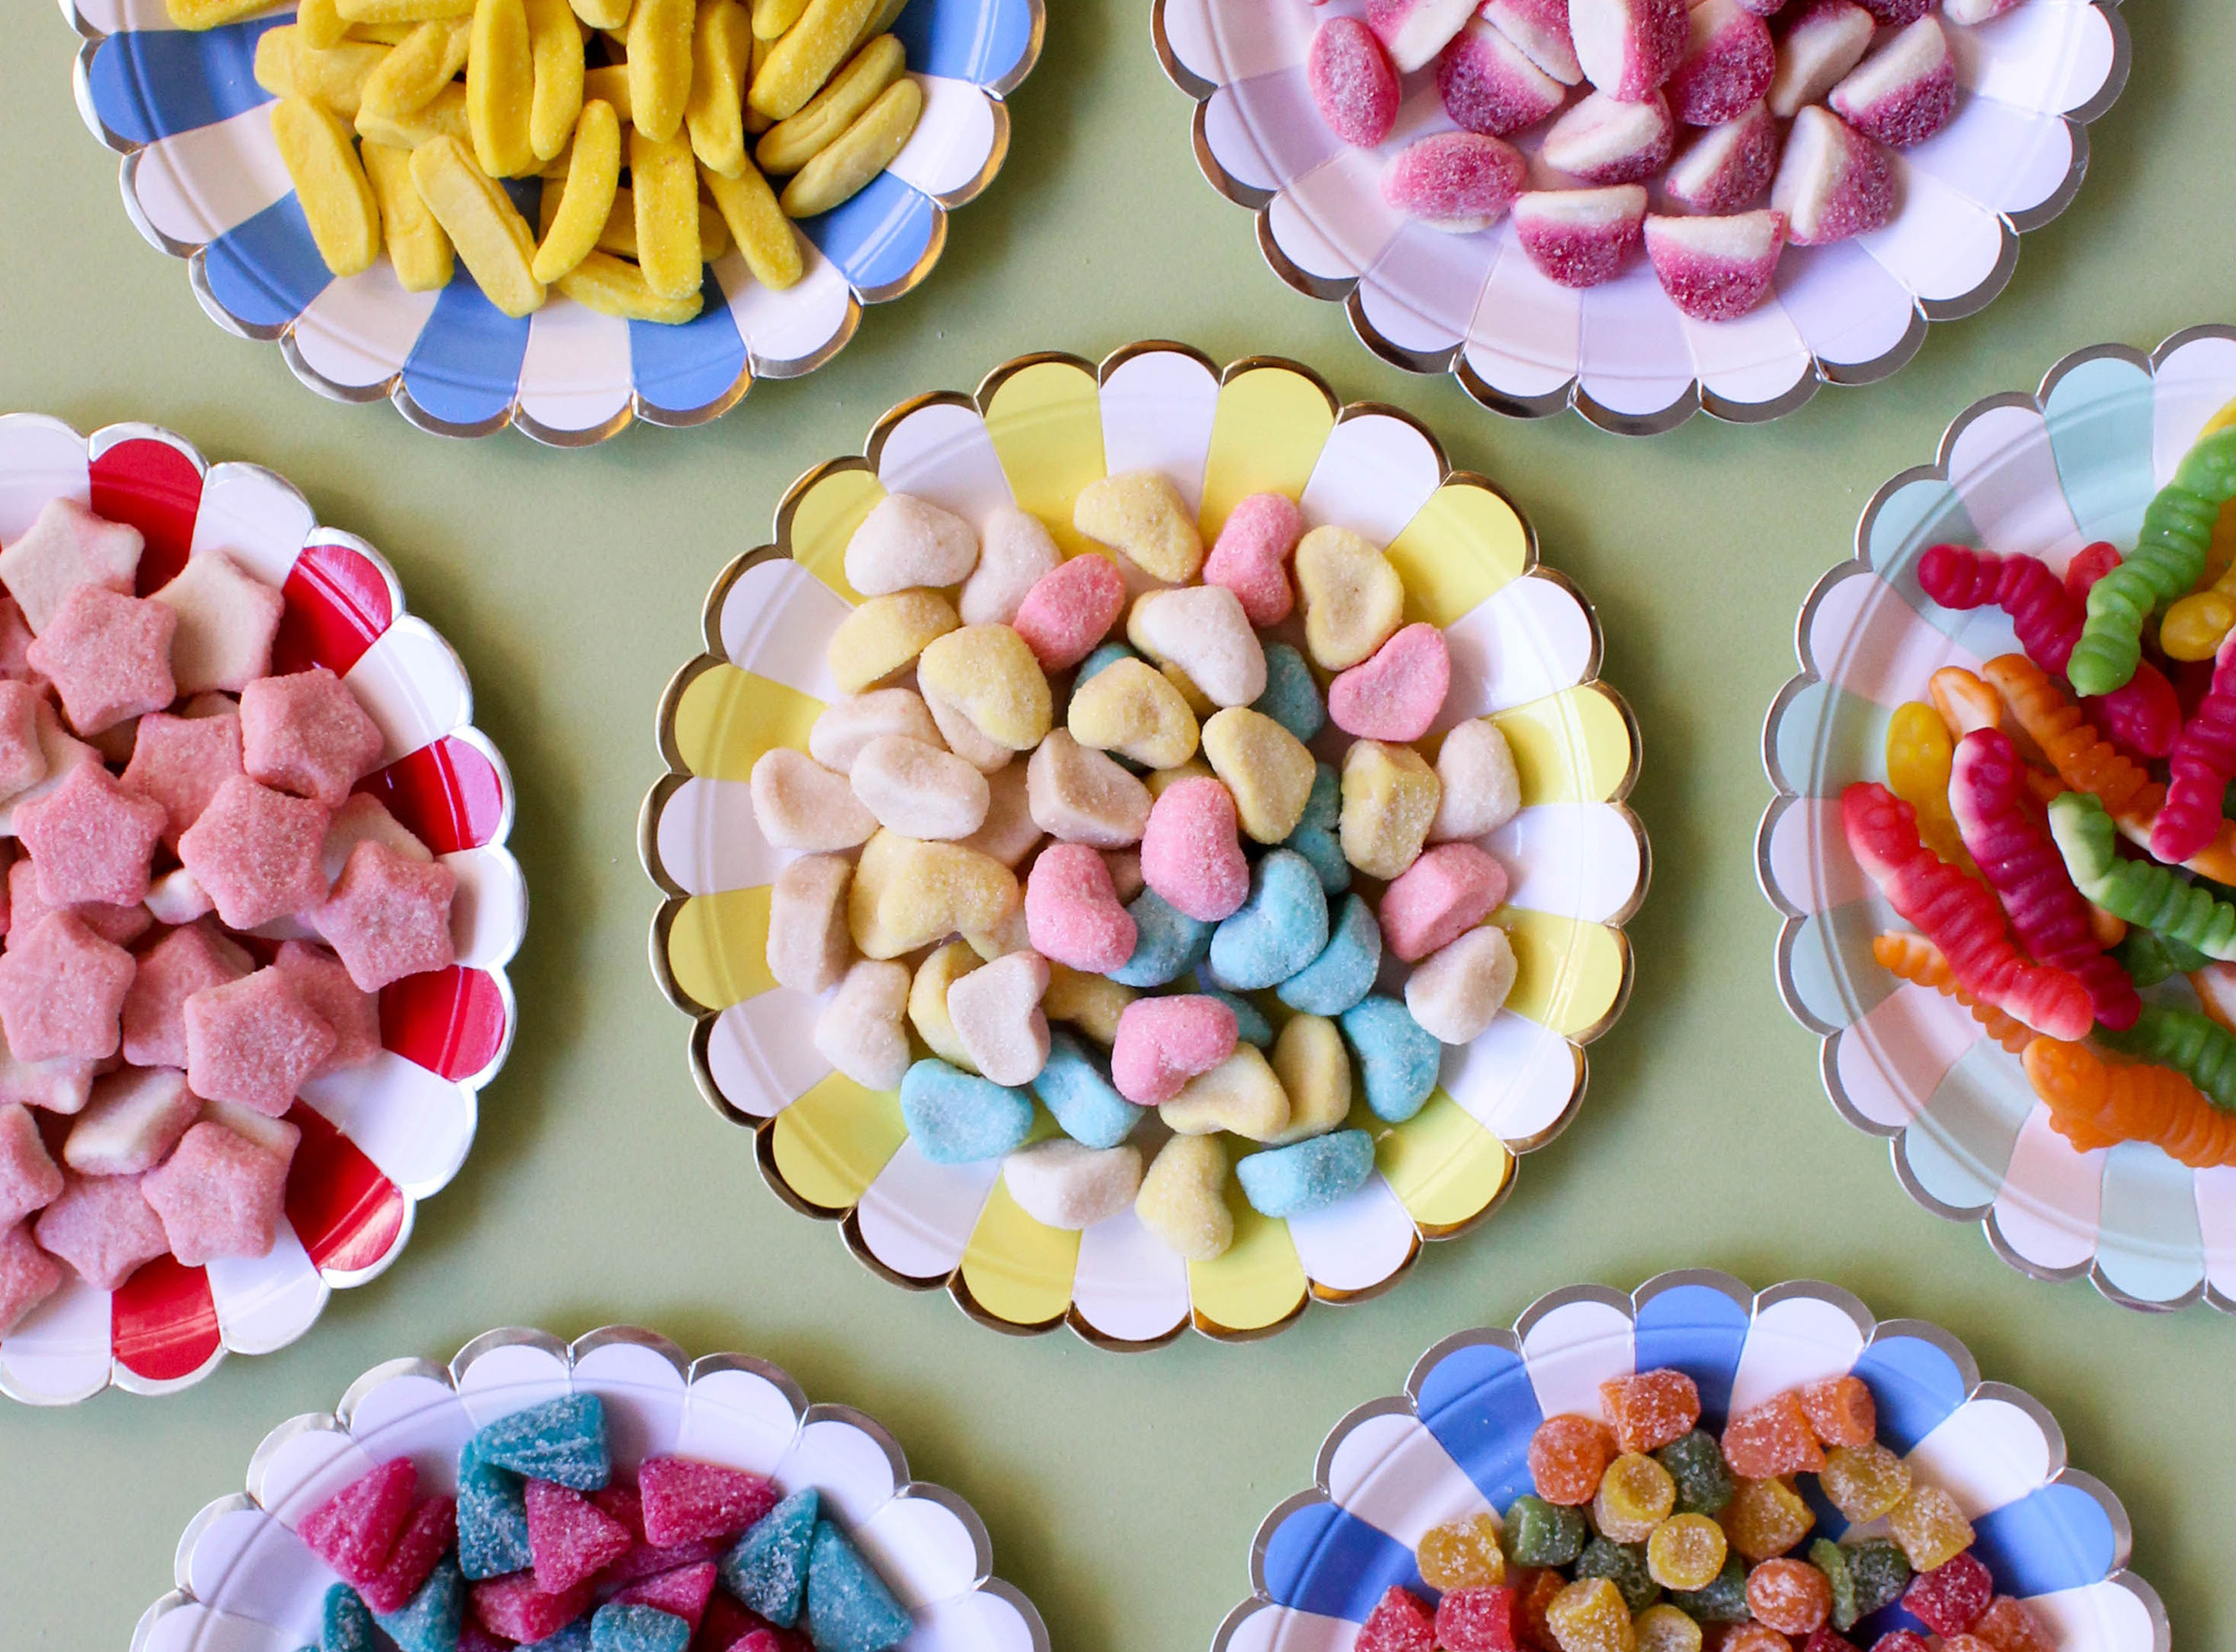 image of tuck shop sweets